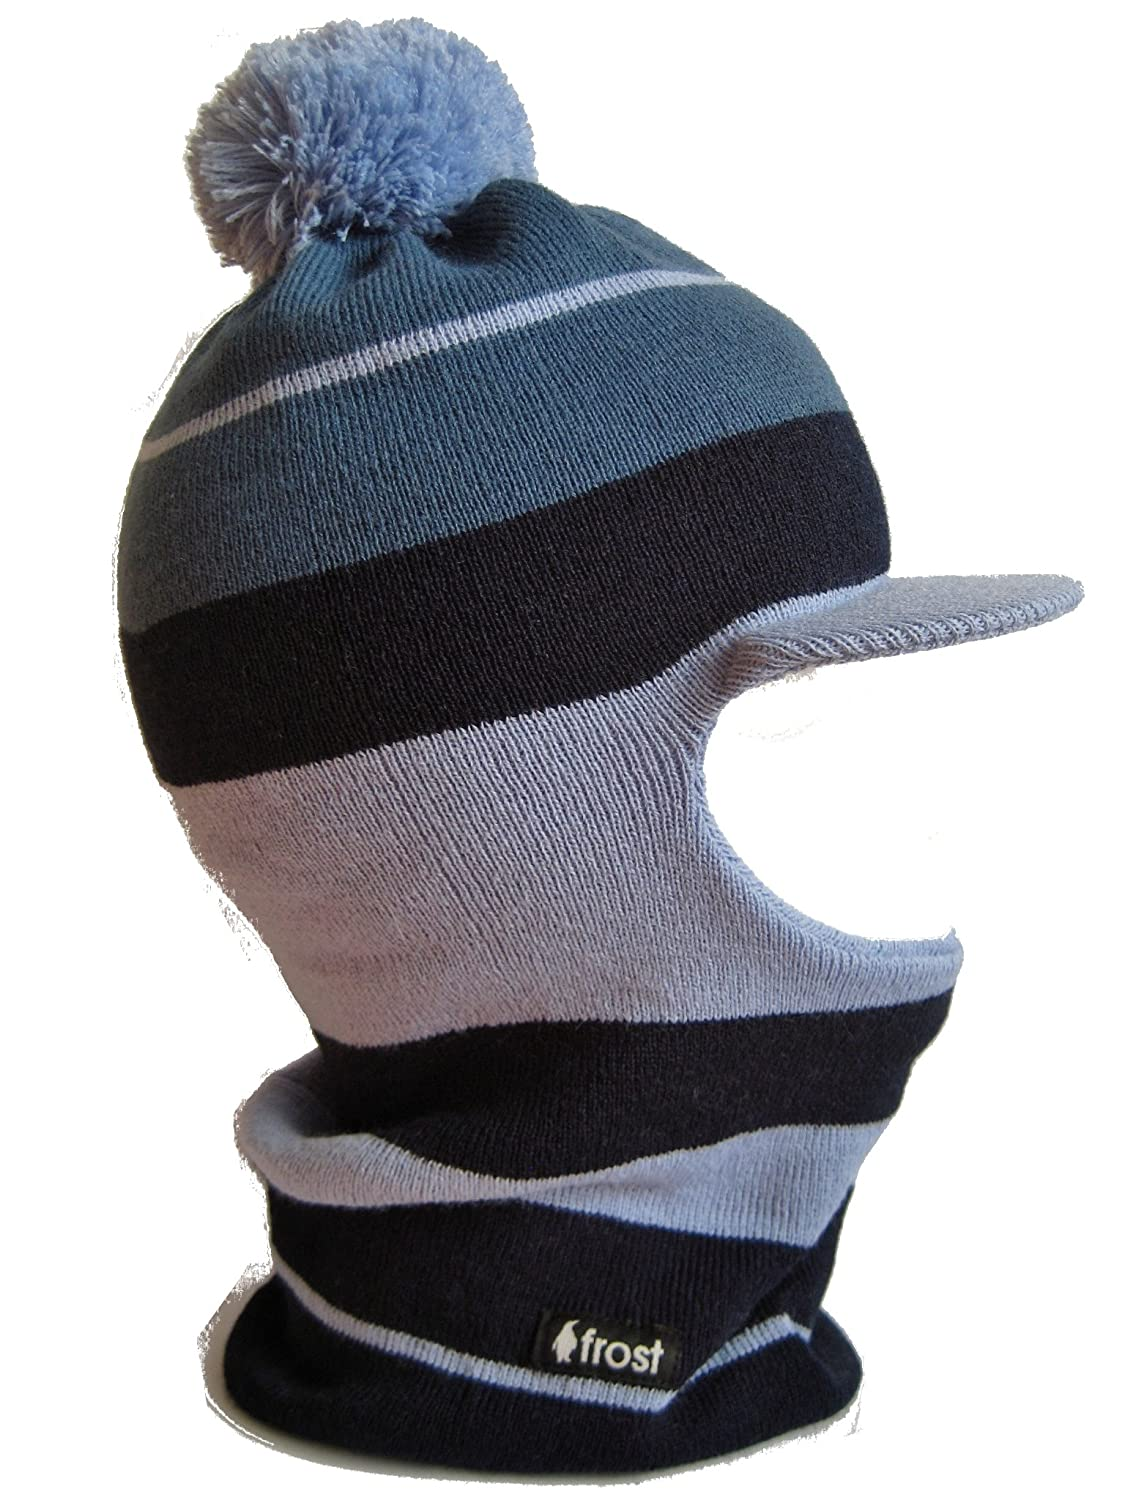 Frost Hats Winter Boy's Hat Balaclava Striped Ski Mask Knit Frost Hats M-222-BLU